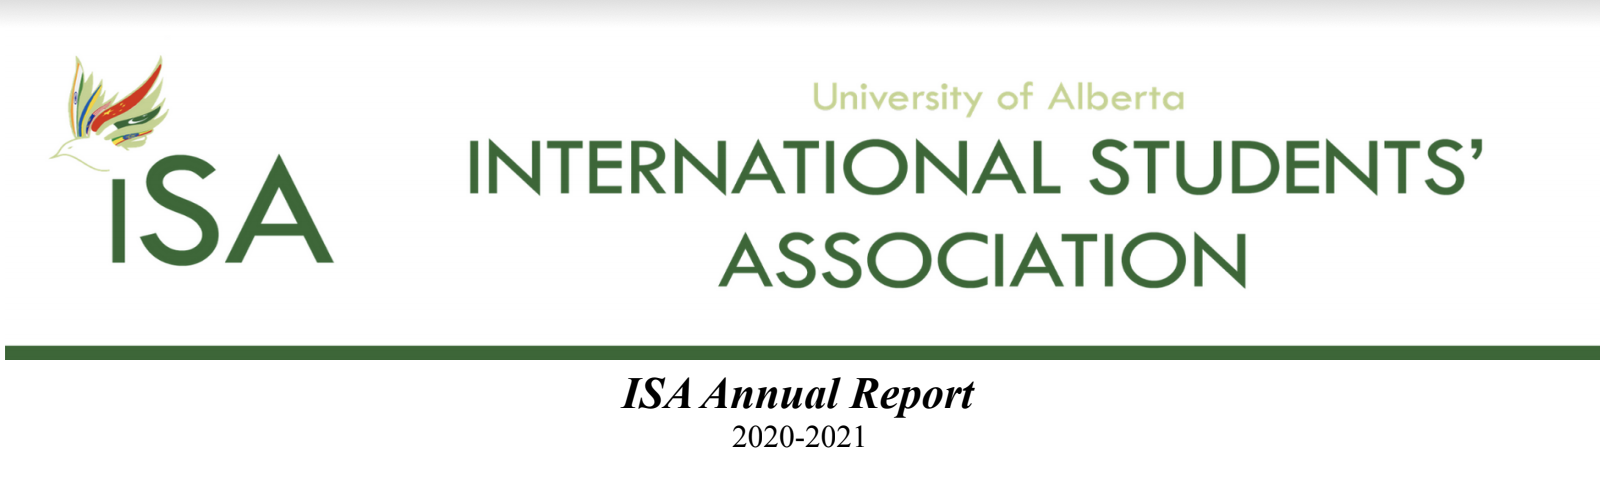 ISA Annul Report (2020-2021)